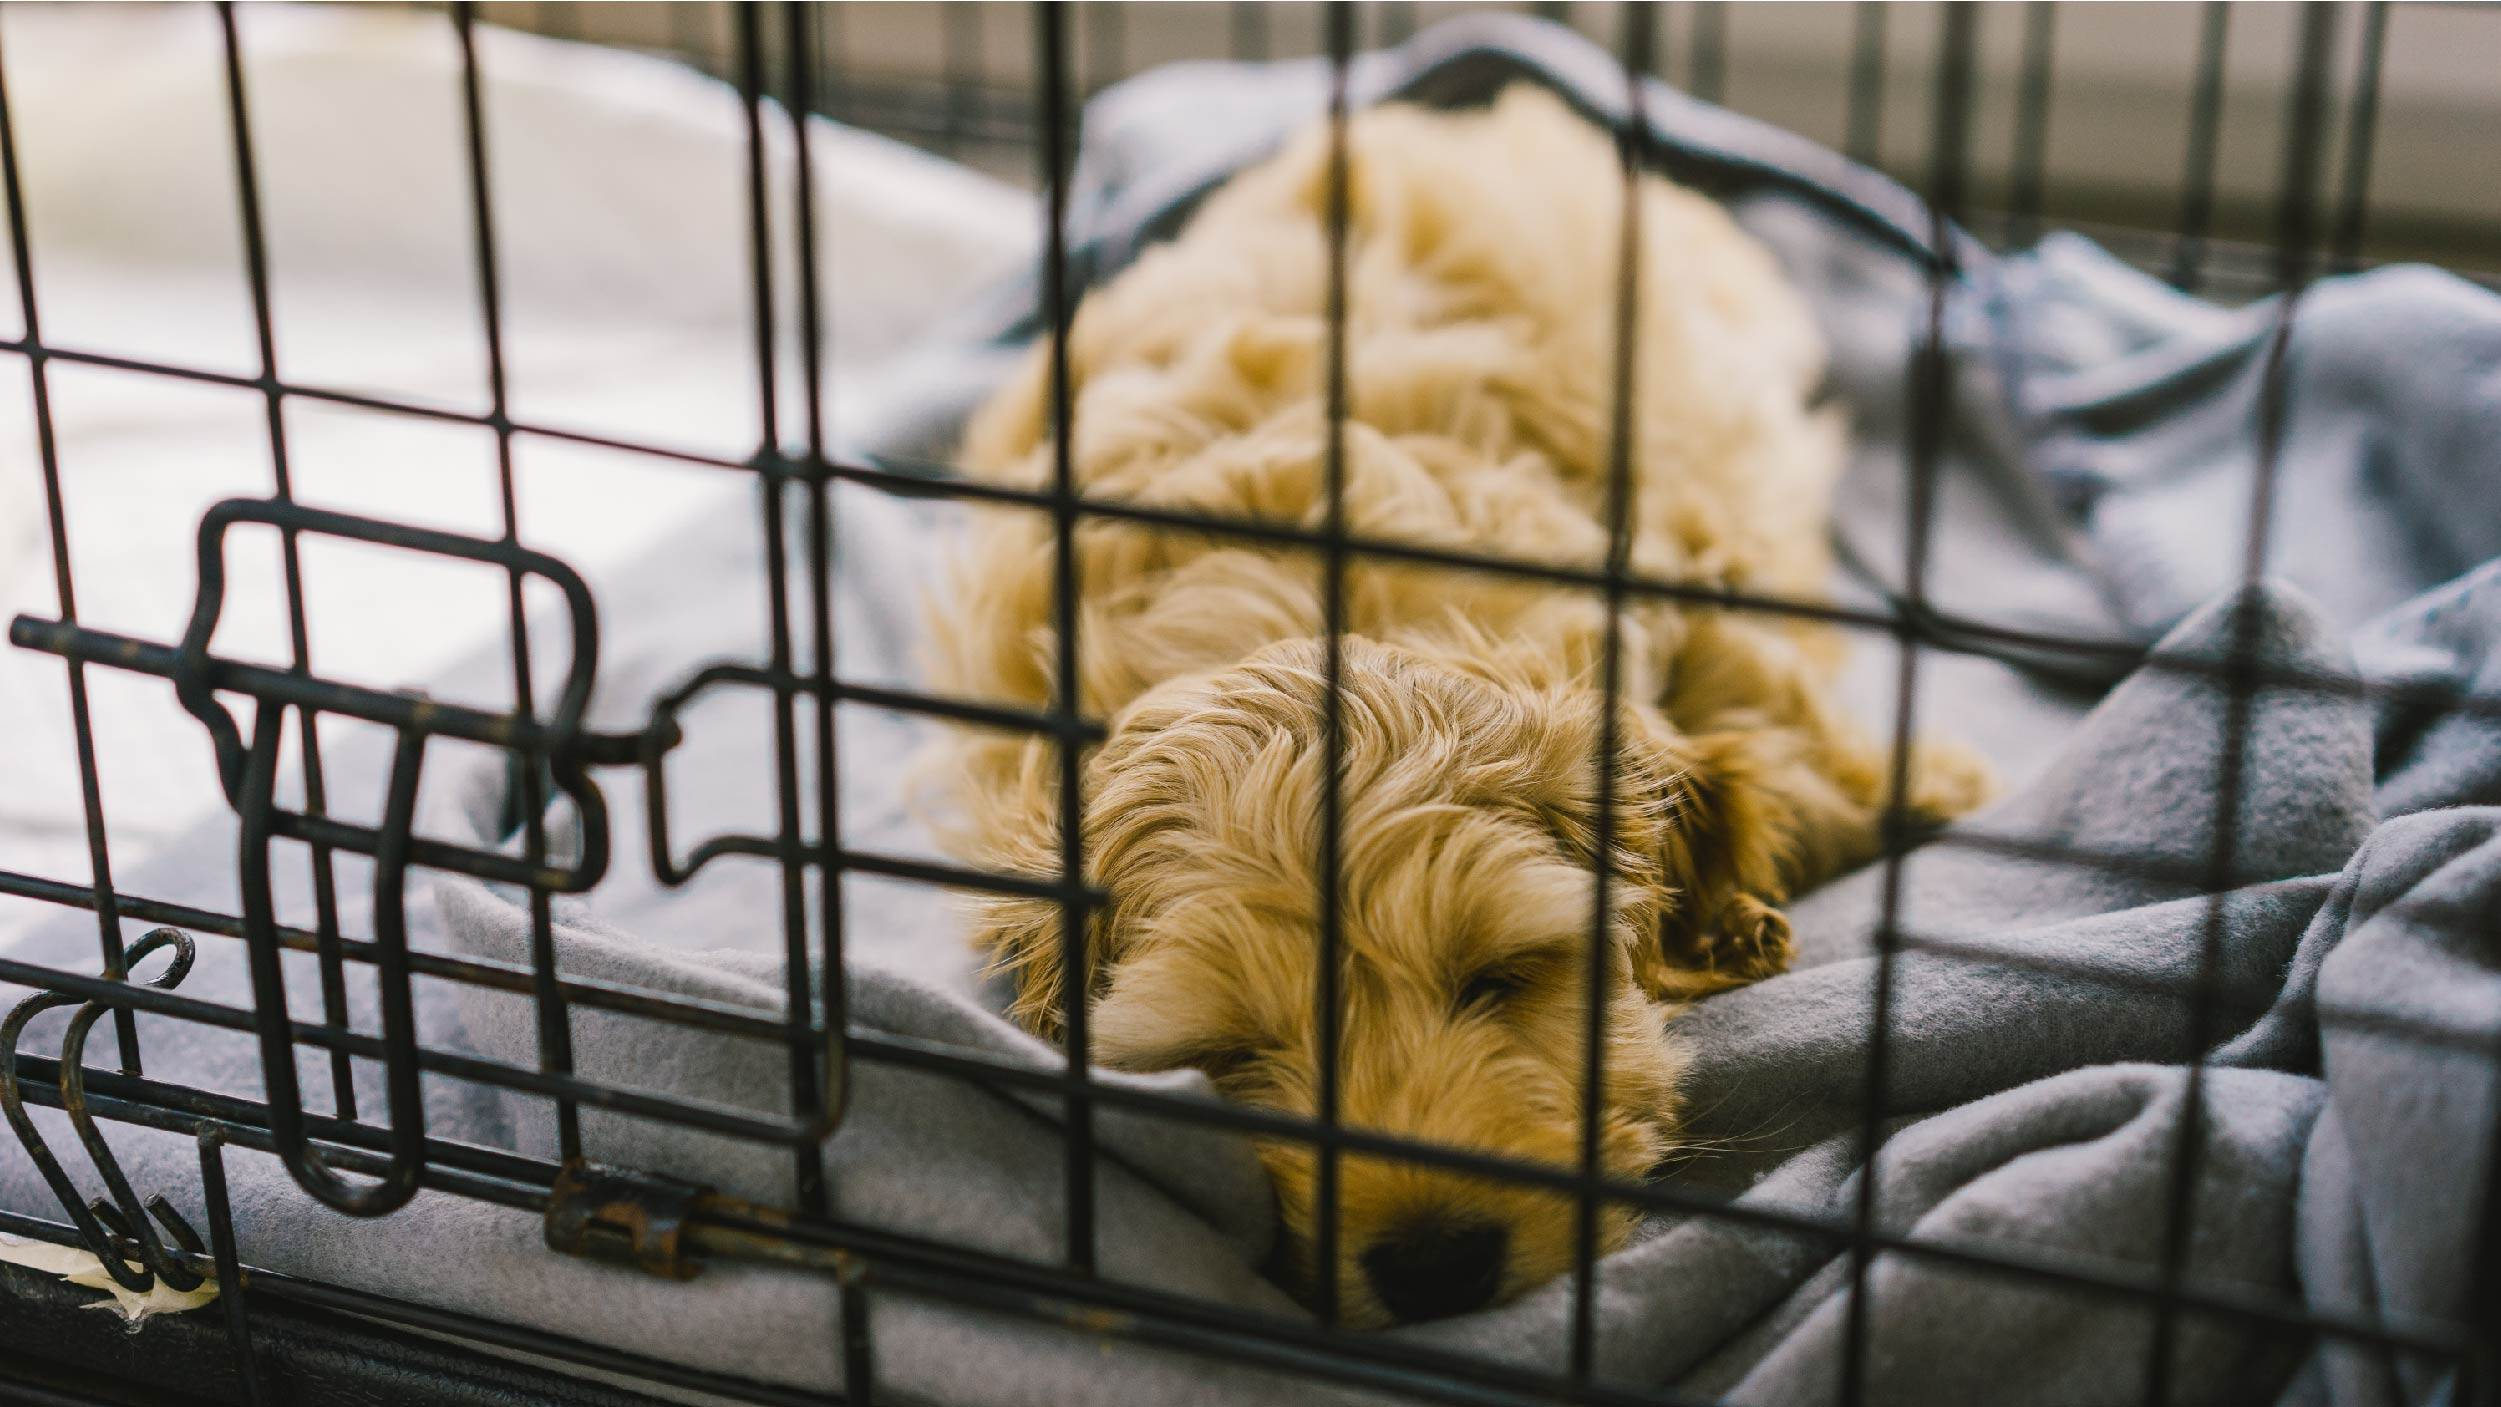 Dog dislikes being crate